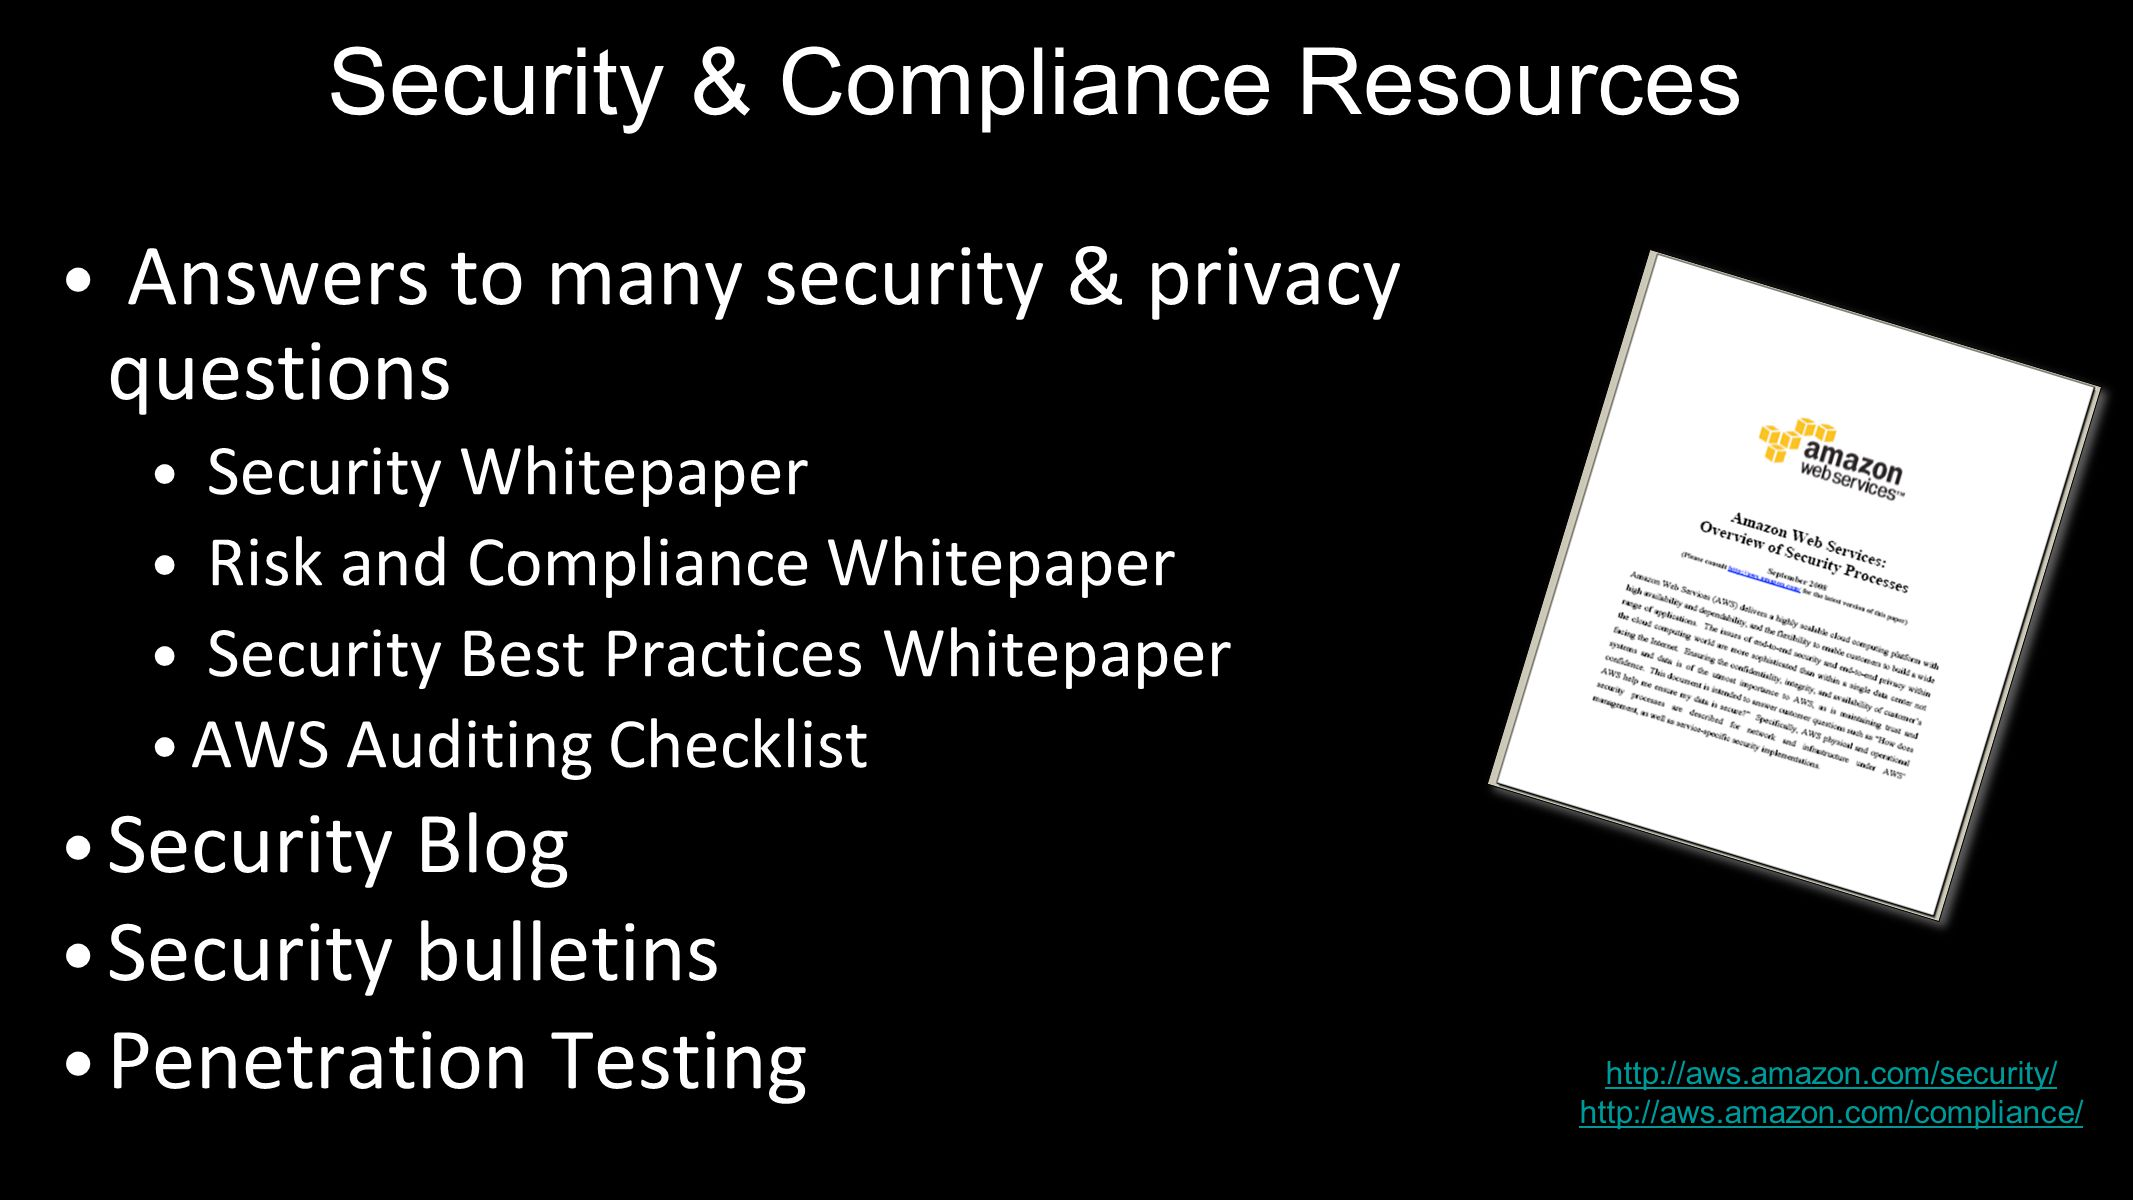 Security & Compliance Resources